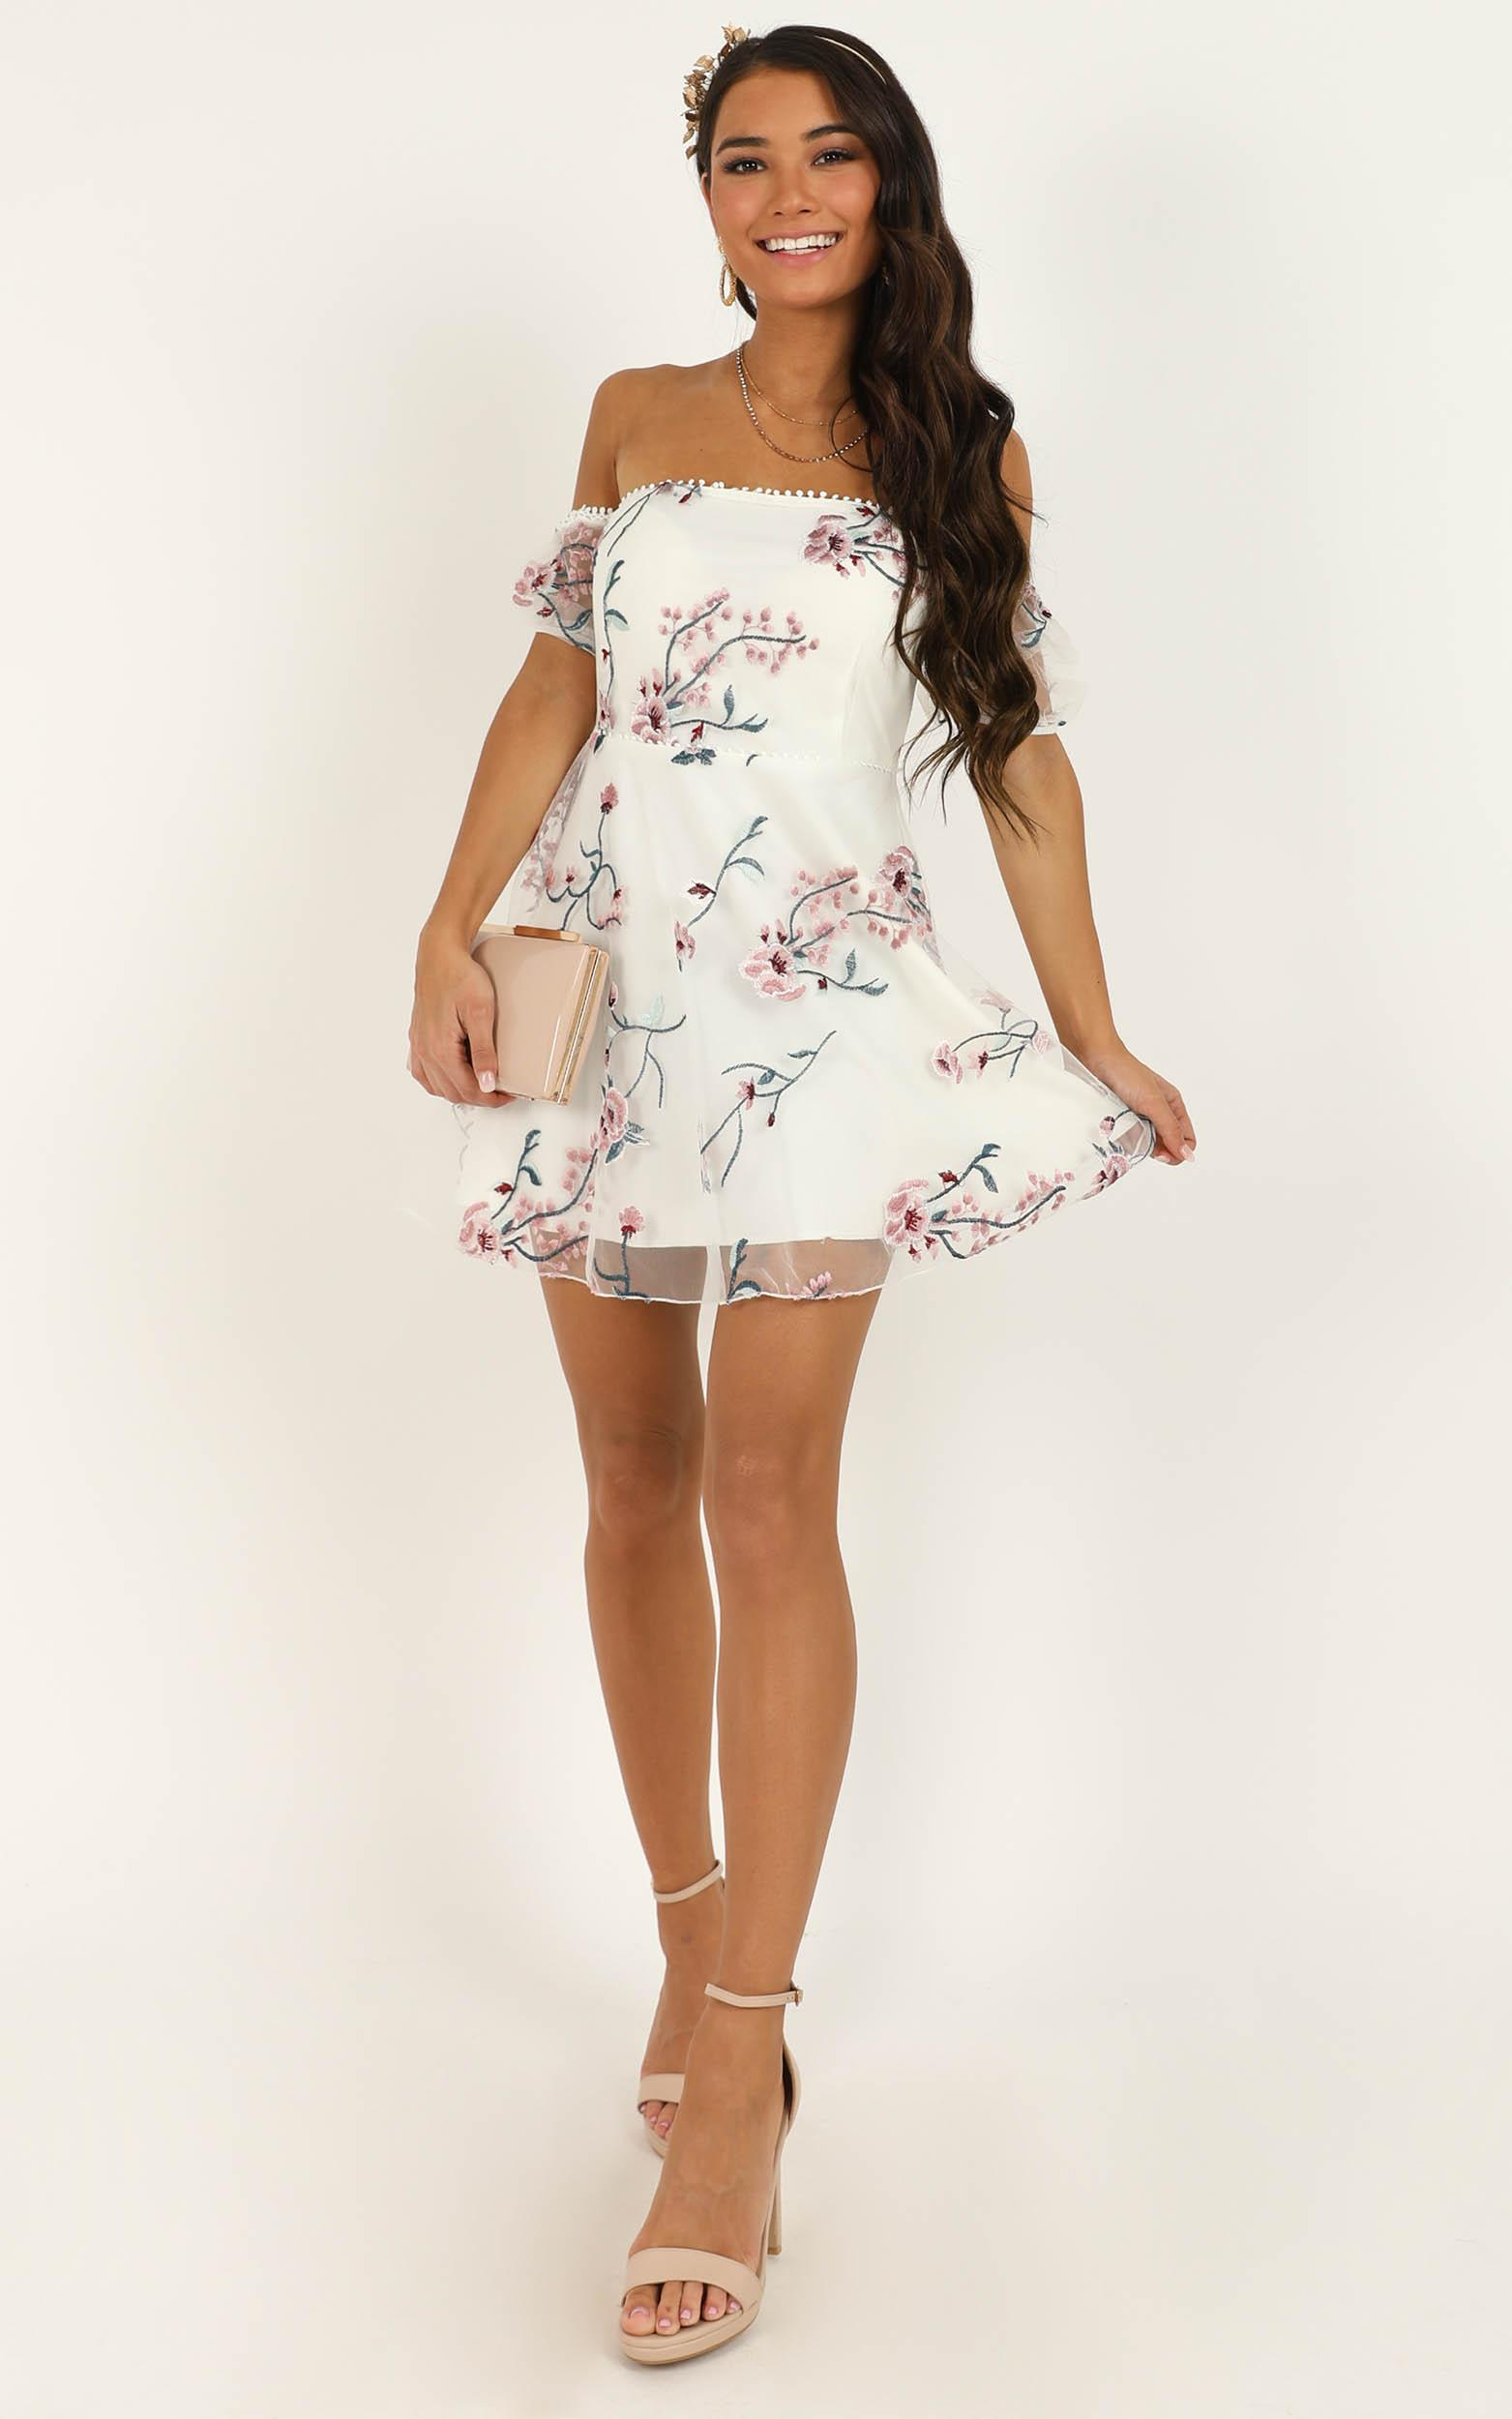 Chic Honey Dress In white embroidery - 20 (XXXXL), White, hi-res image number null